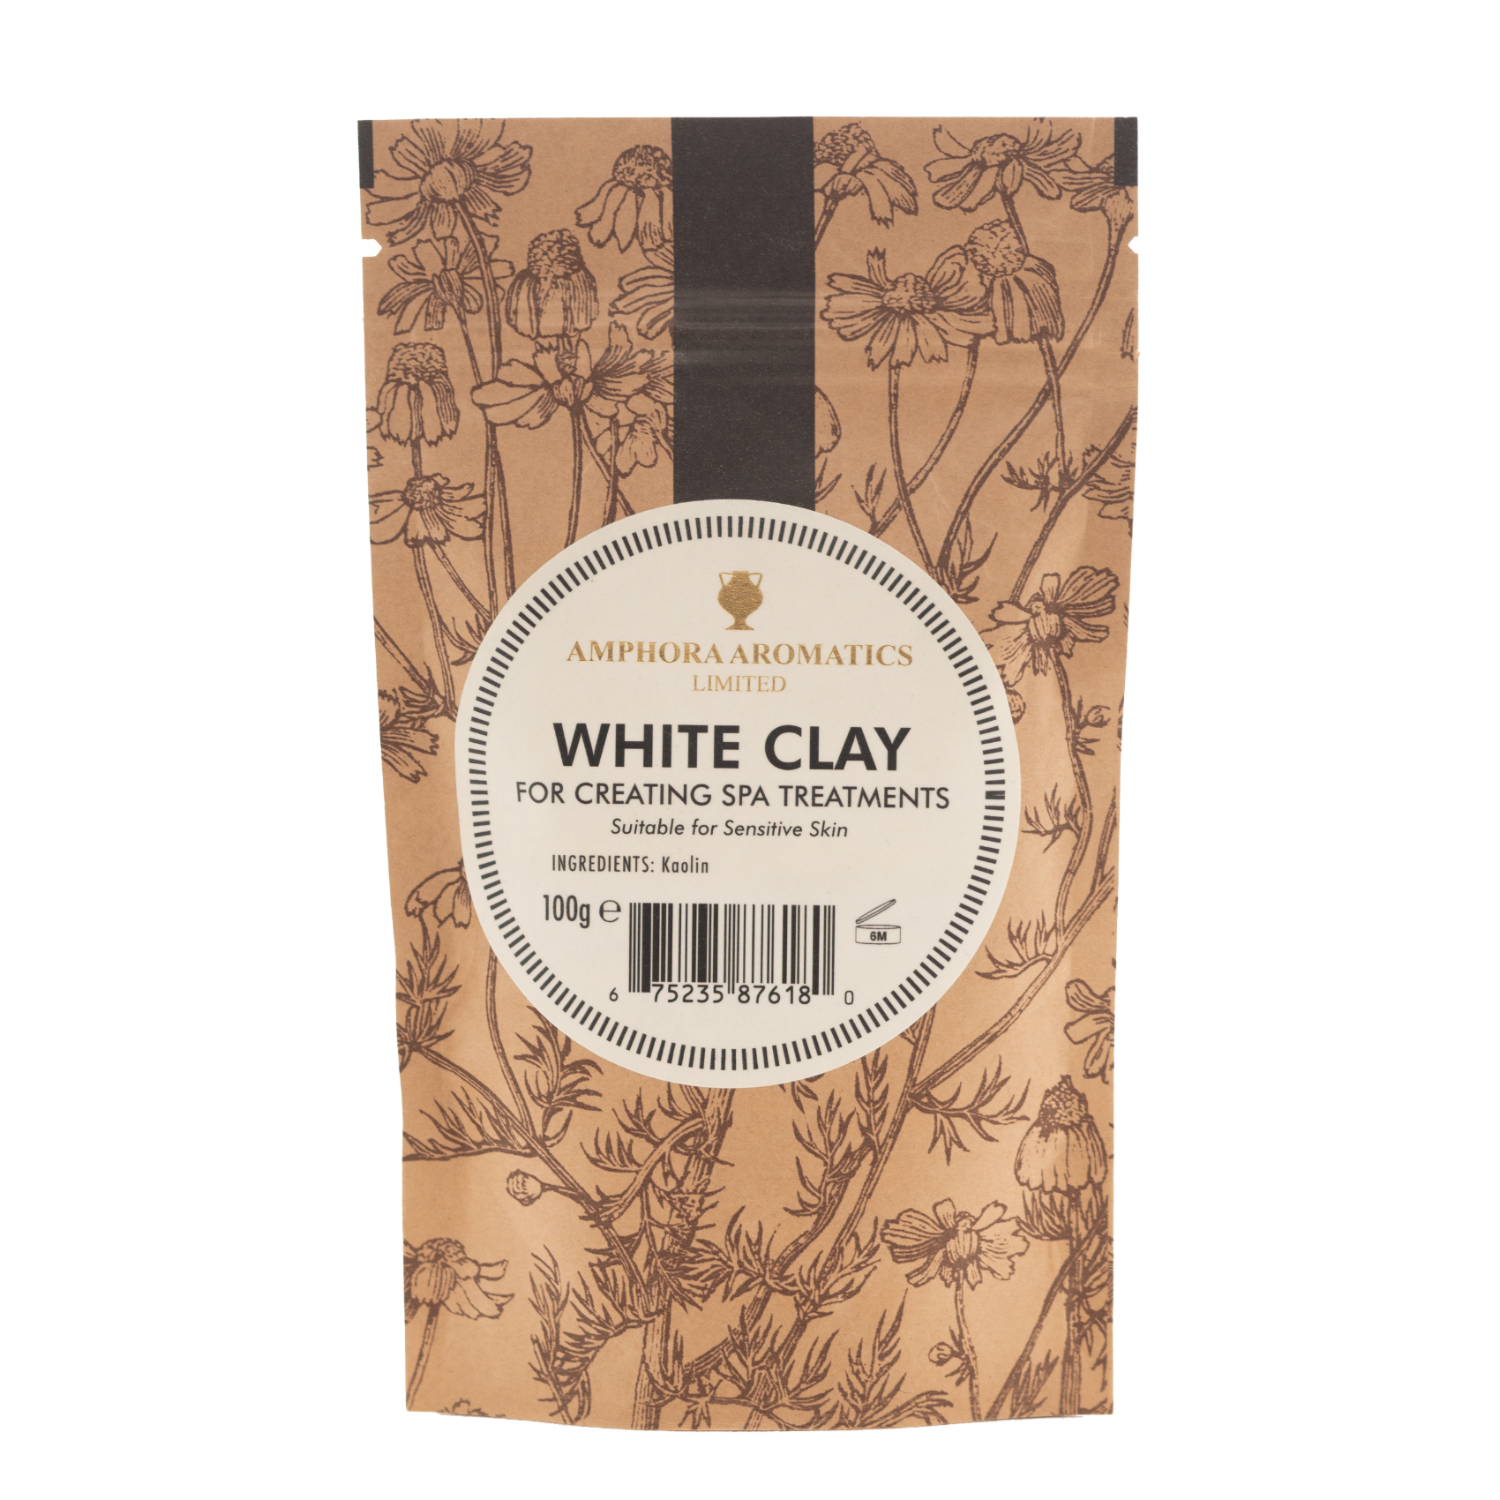 White Clay 100g pouch